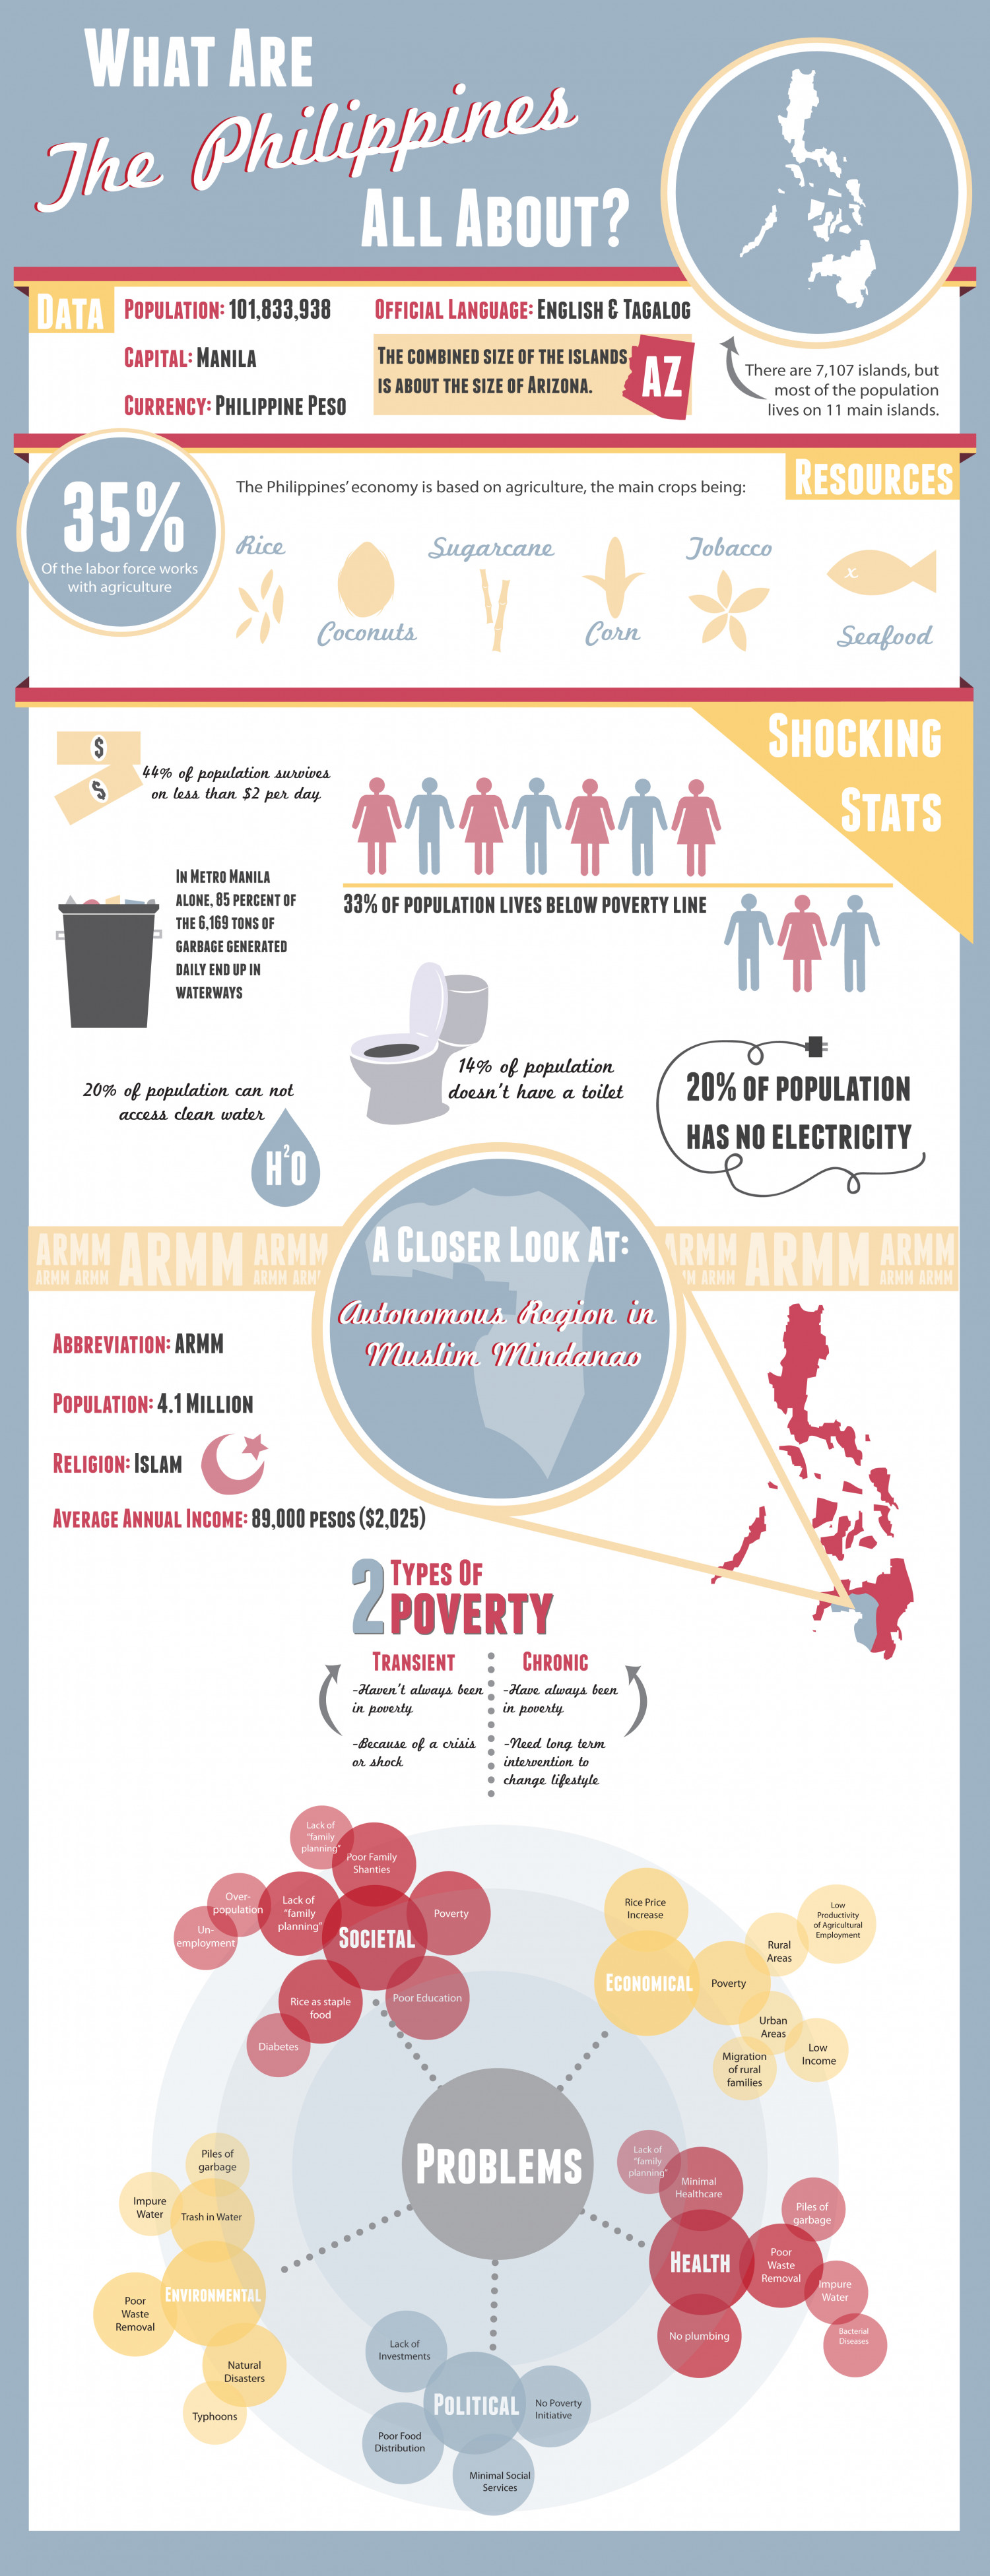 What Are the Philippines All About? Infographic